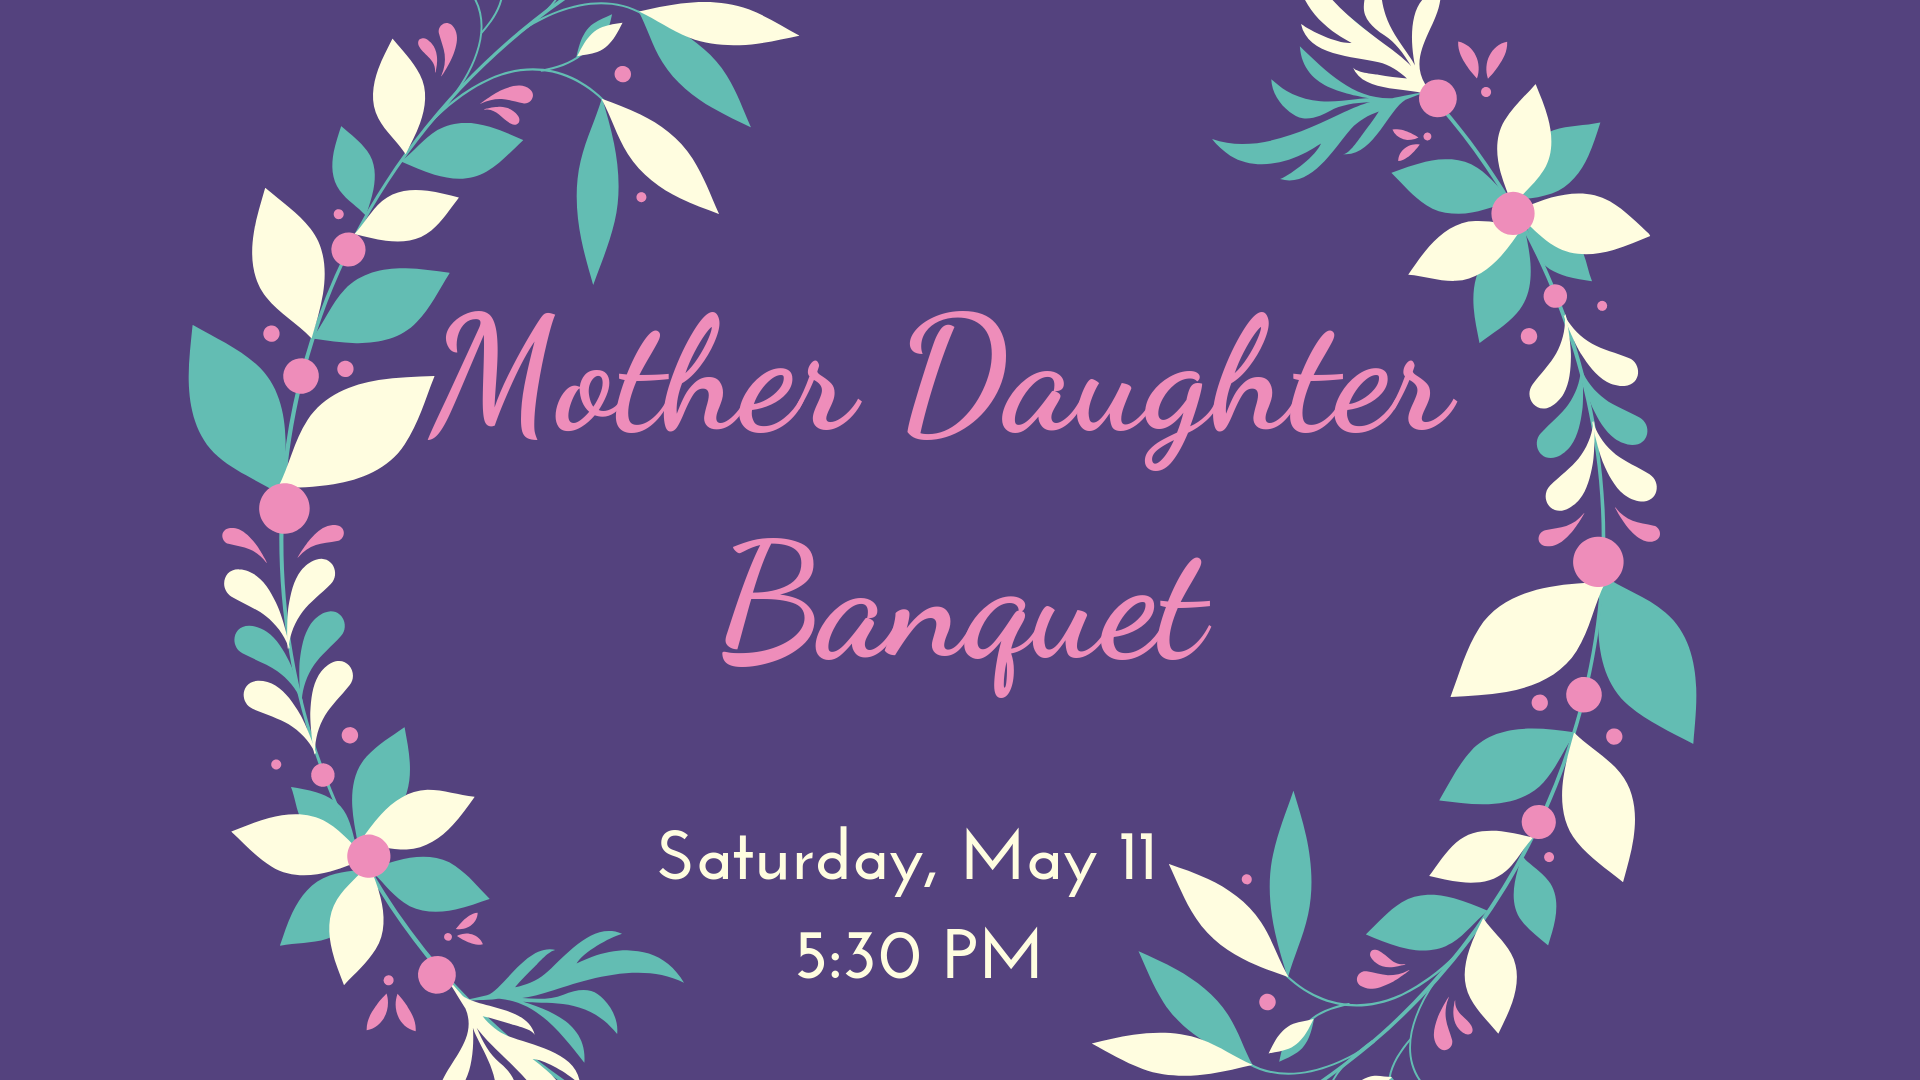 Copy of Copy of Mother Daughter Banquet.png